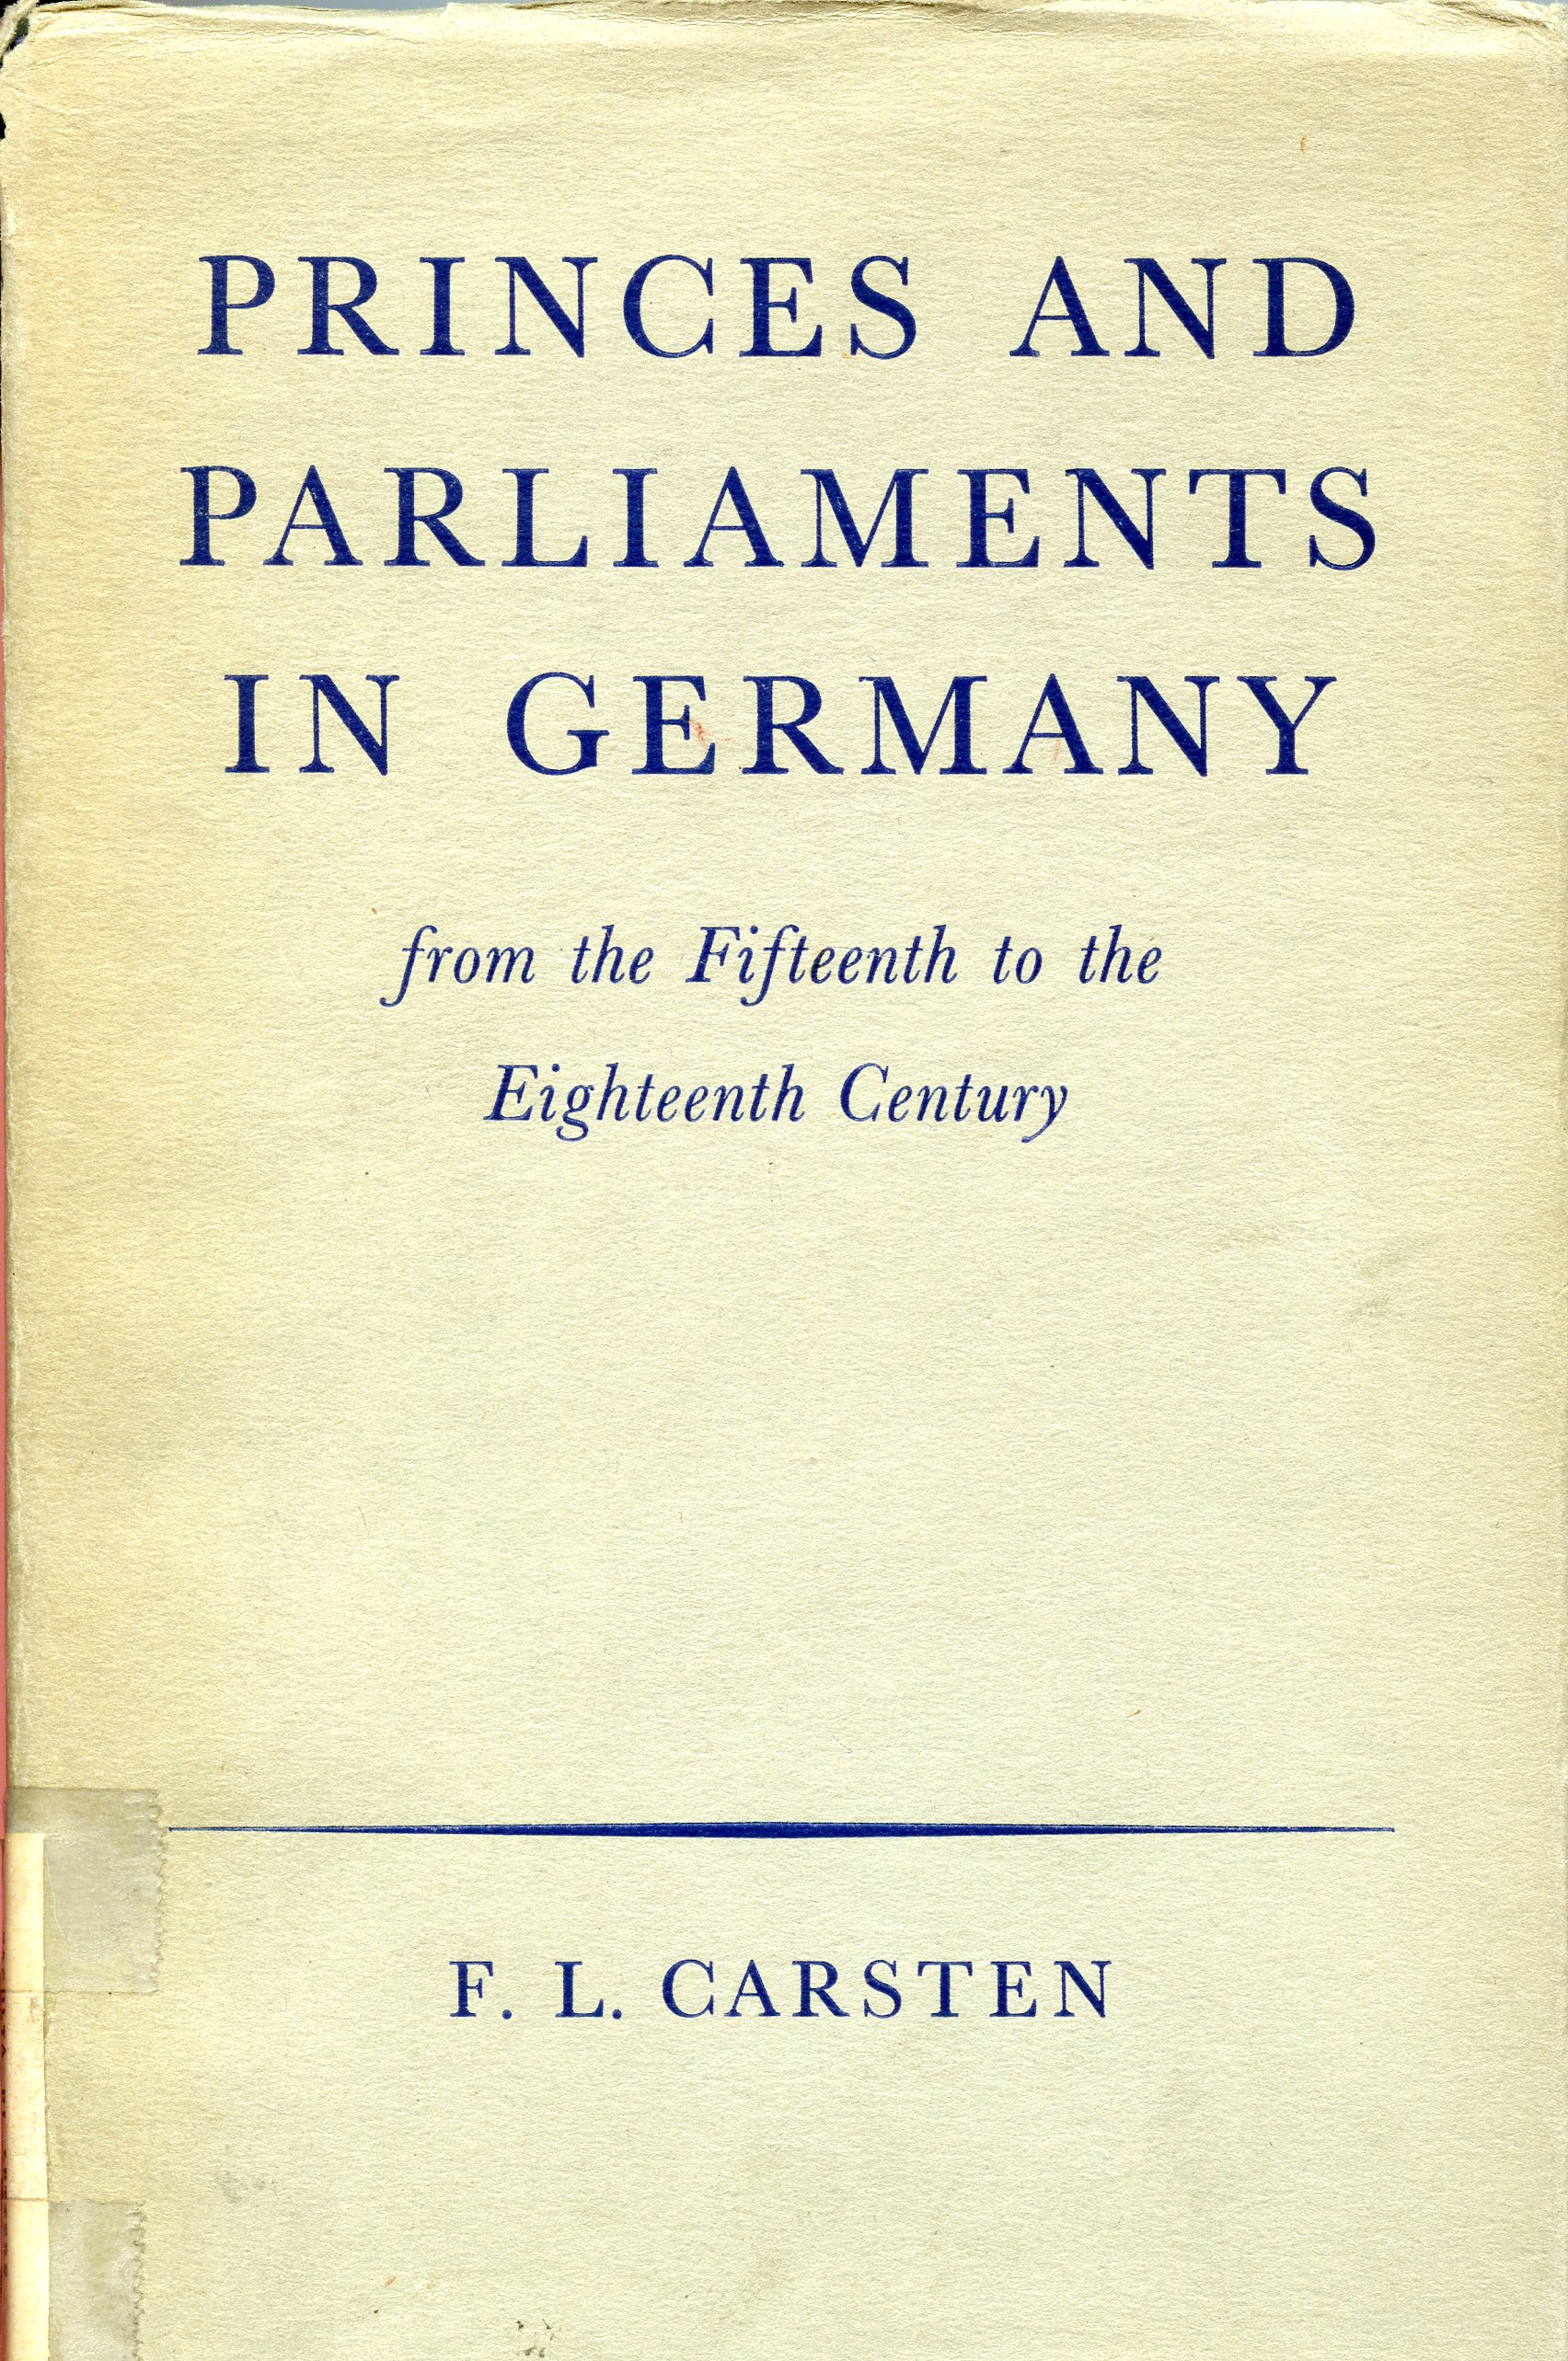 Princes and Parliaments in Germany